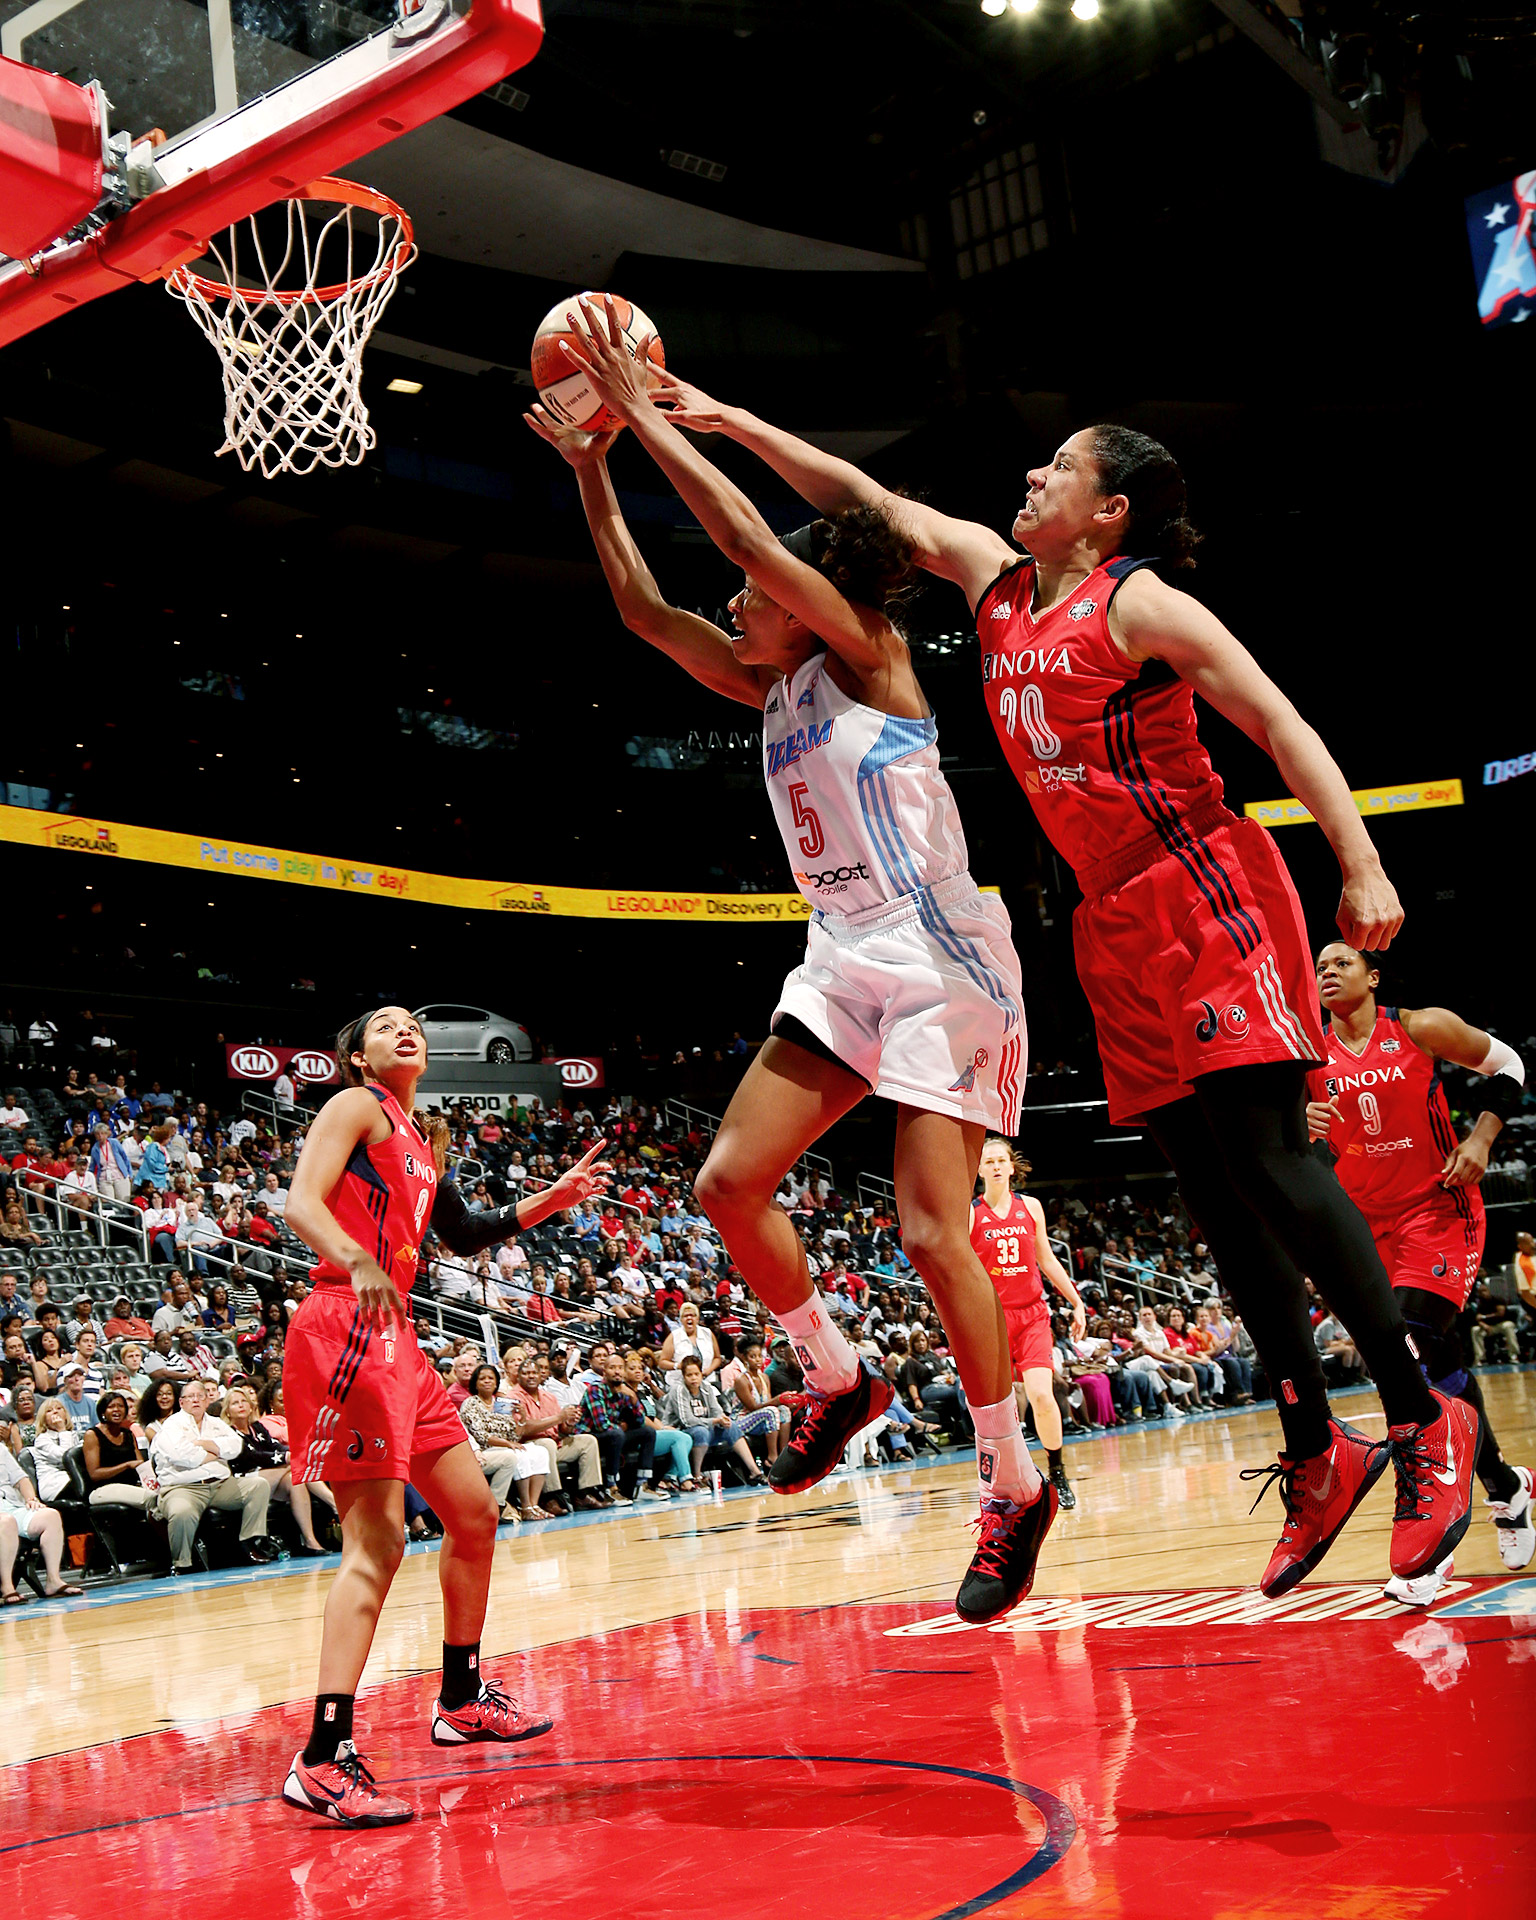 The Atlanta Dream's Jasmine Thomas grabs a rebound against the Washington Mystics during their WNBA game at Philips Arena in Georgia.